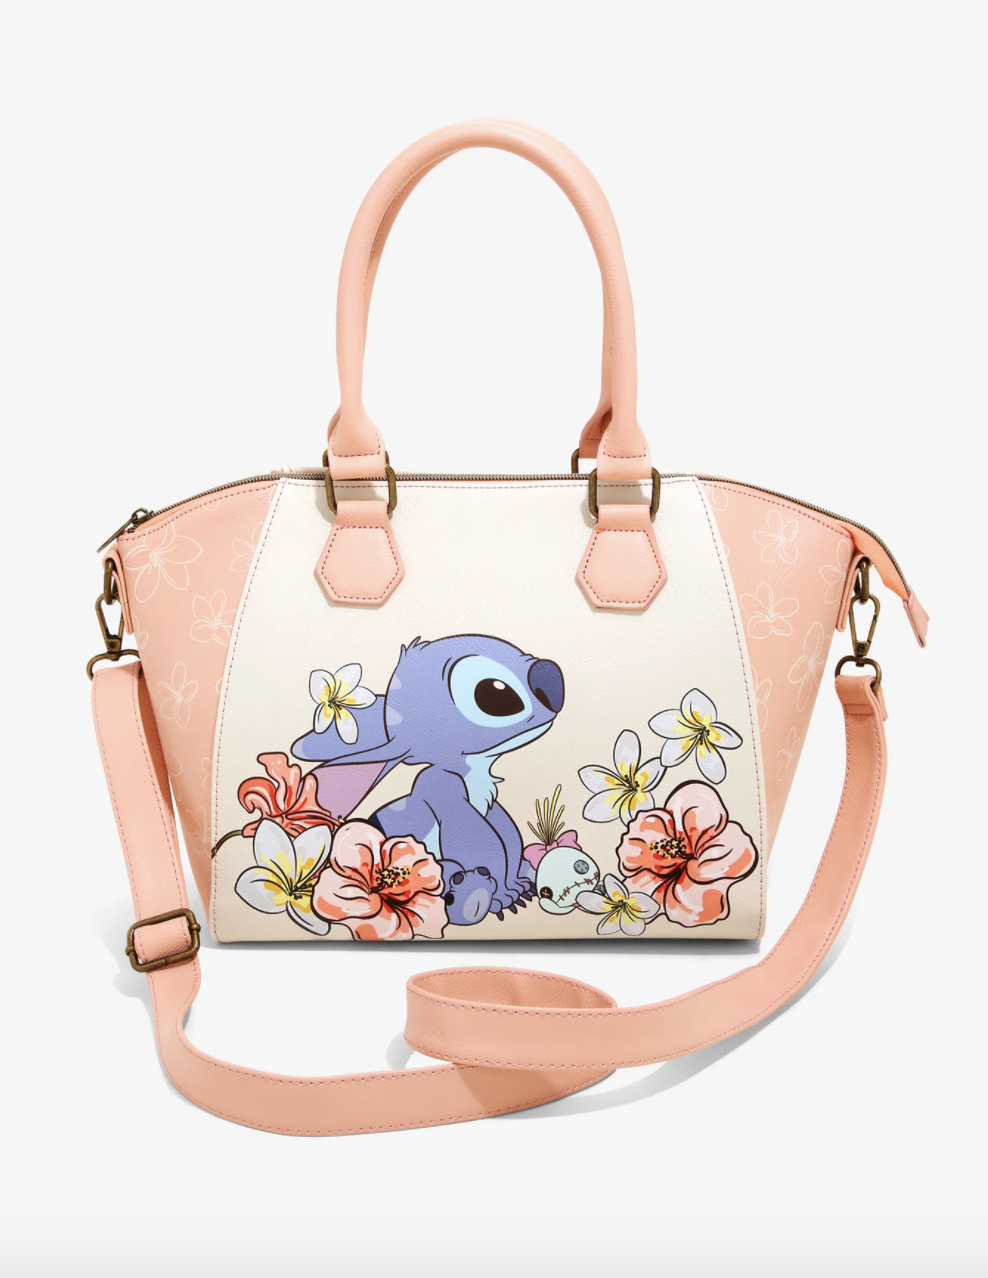 the pastel bag with an illustration of a cute Stitch sitting among flowers